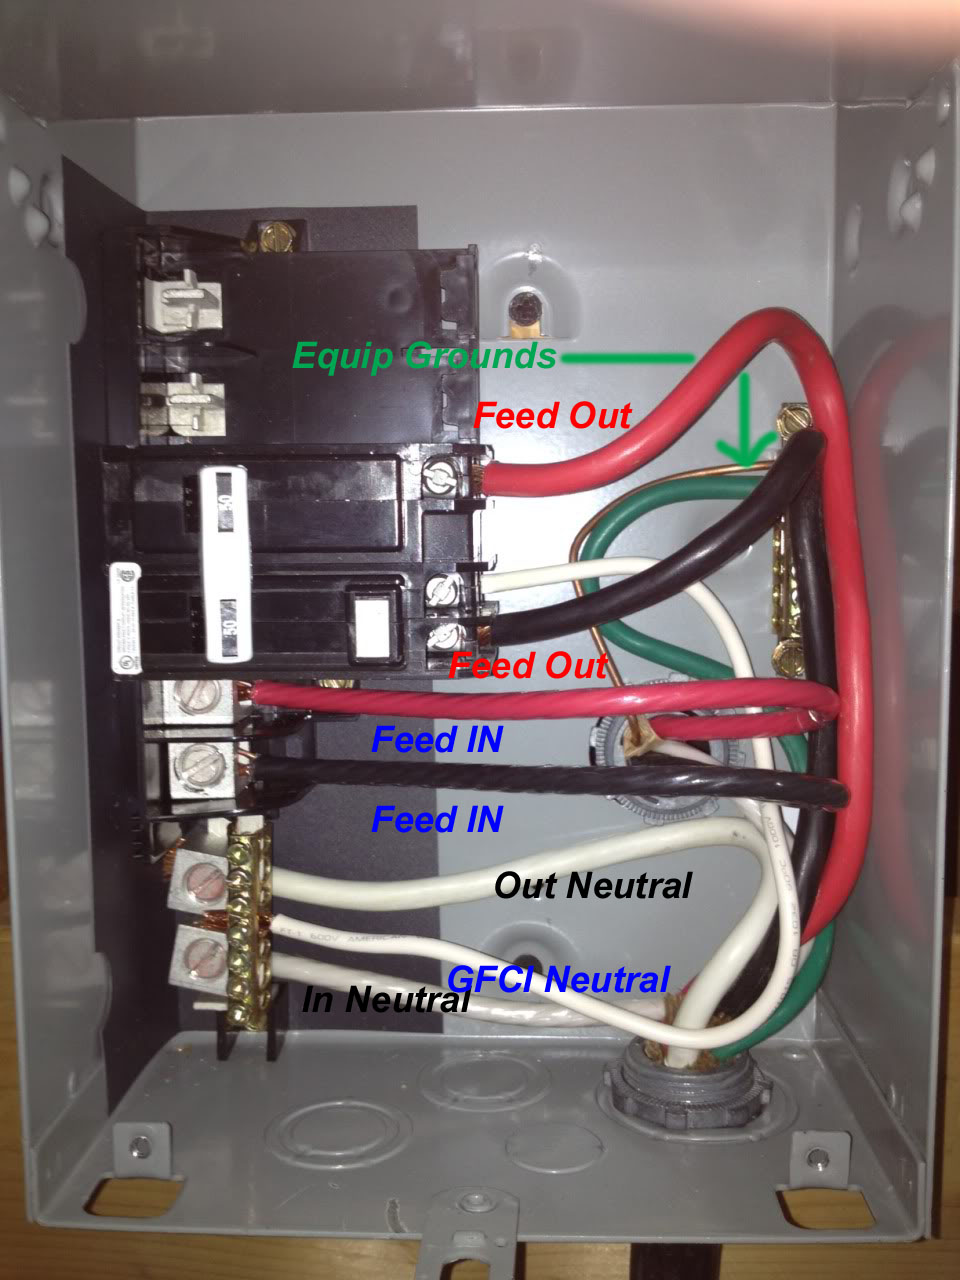 amp wiring diagram instructions 2004 silverado radio i have a midwest spa sub panel does the common hook to lug under nutaael bar